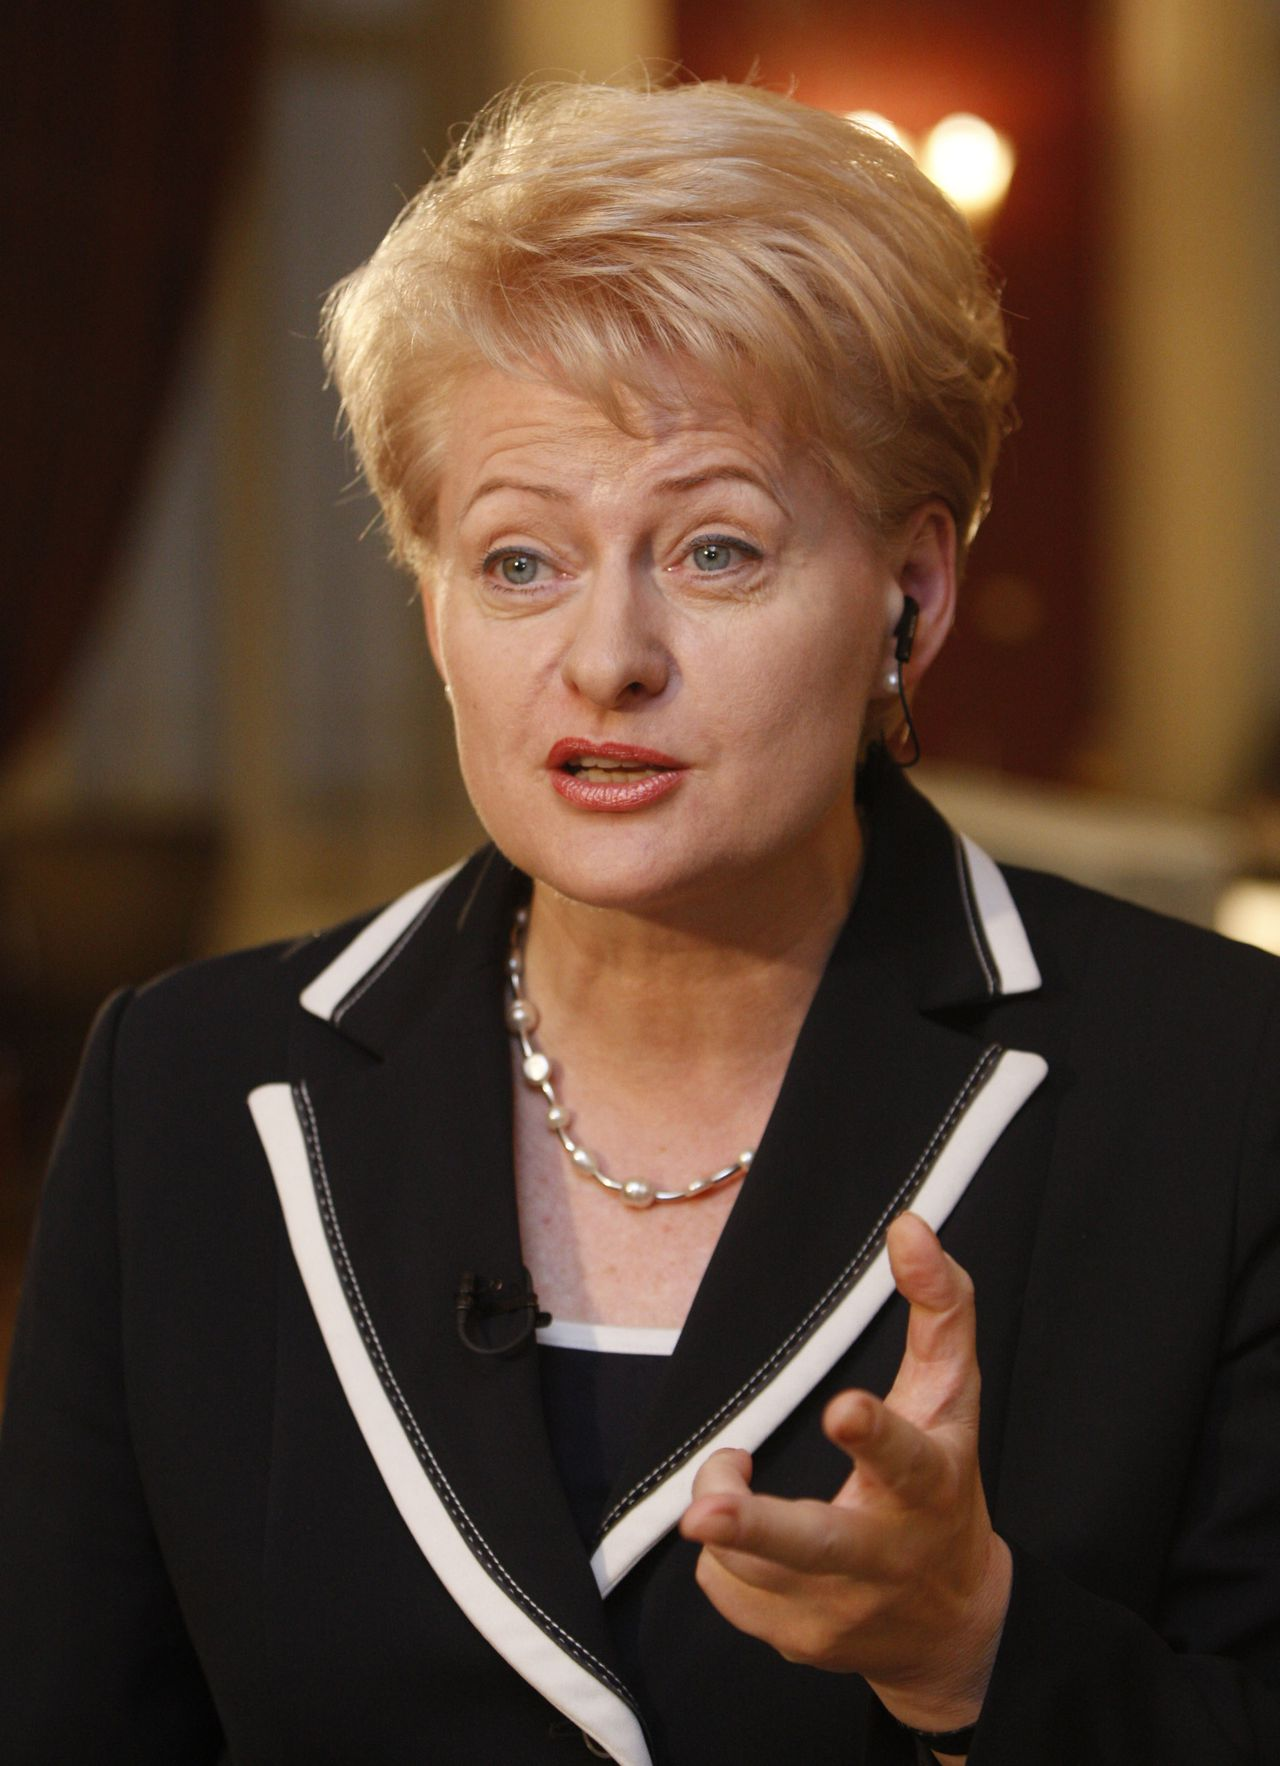 Dalia Grybauskaite. (Foto AP) Lithuania's presidential candidate and EU Budget Commissioner Dalia Grybauskaite speaks to the media as she waits for the results of Lithuania's presidential election first round in Vilnius, Lithuania,Sunday,May 17, 2009. The European Union's budget chief is strongly favored to win Lithuania's presidential election on Sunday, as crisis-weary voters seek relief from the Baltic nation's deepening economic gloom. (AP Photo/Mindaugas Kulbis)